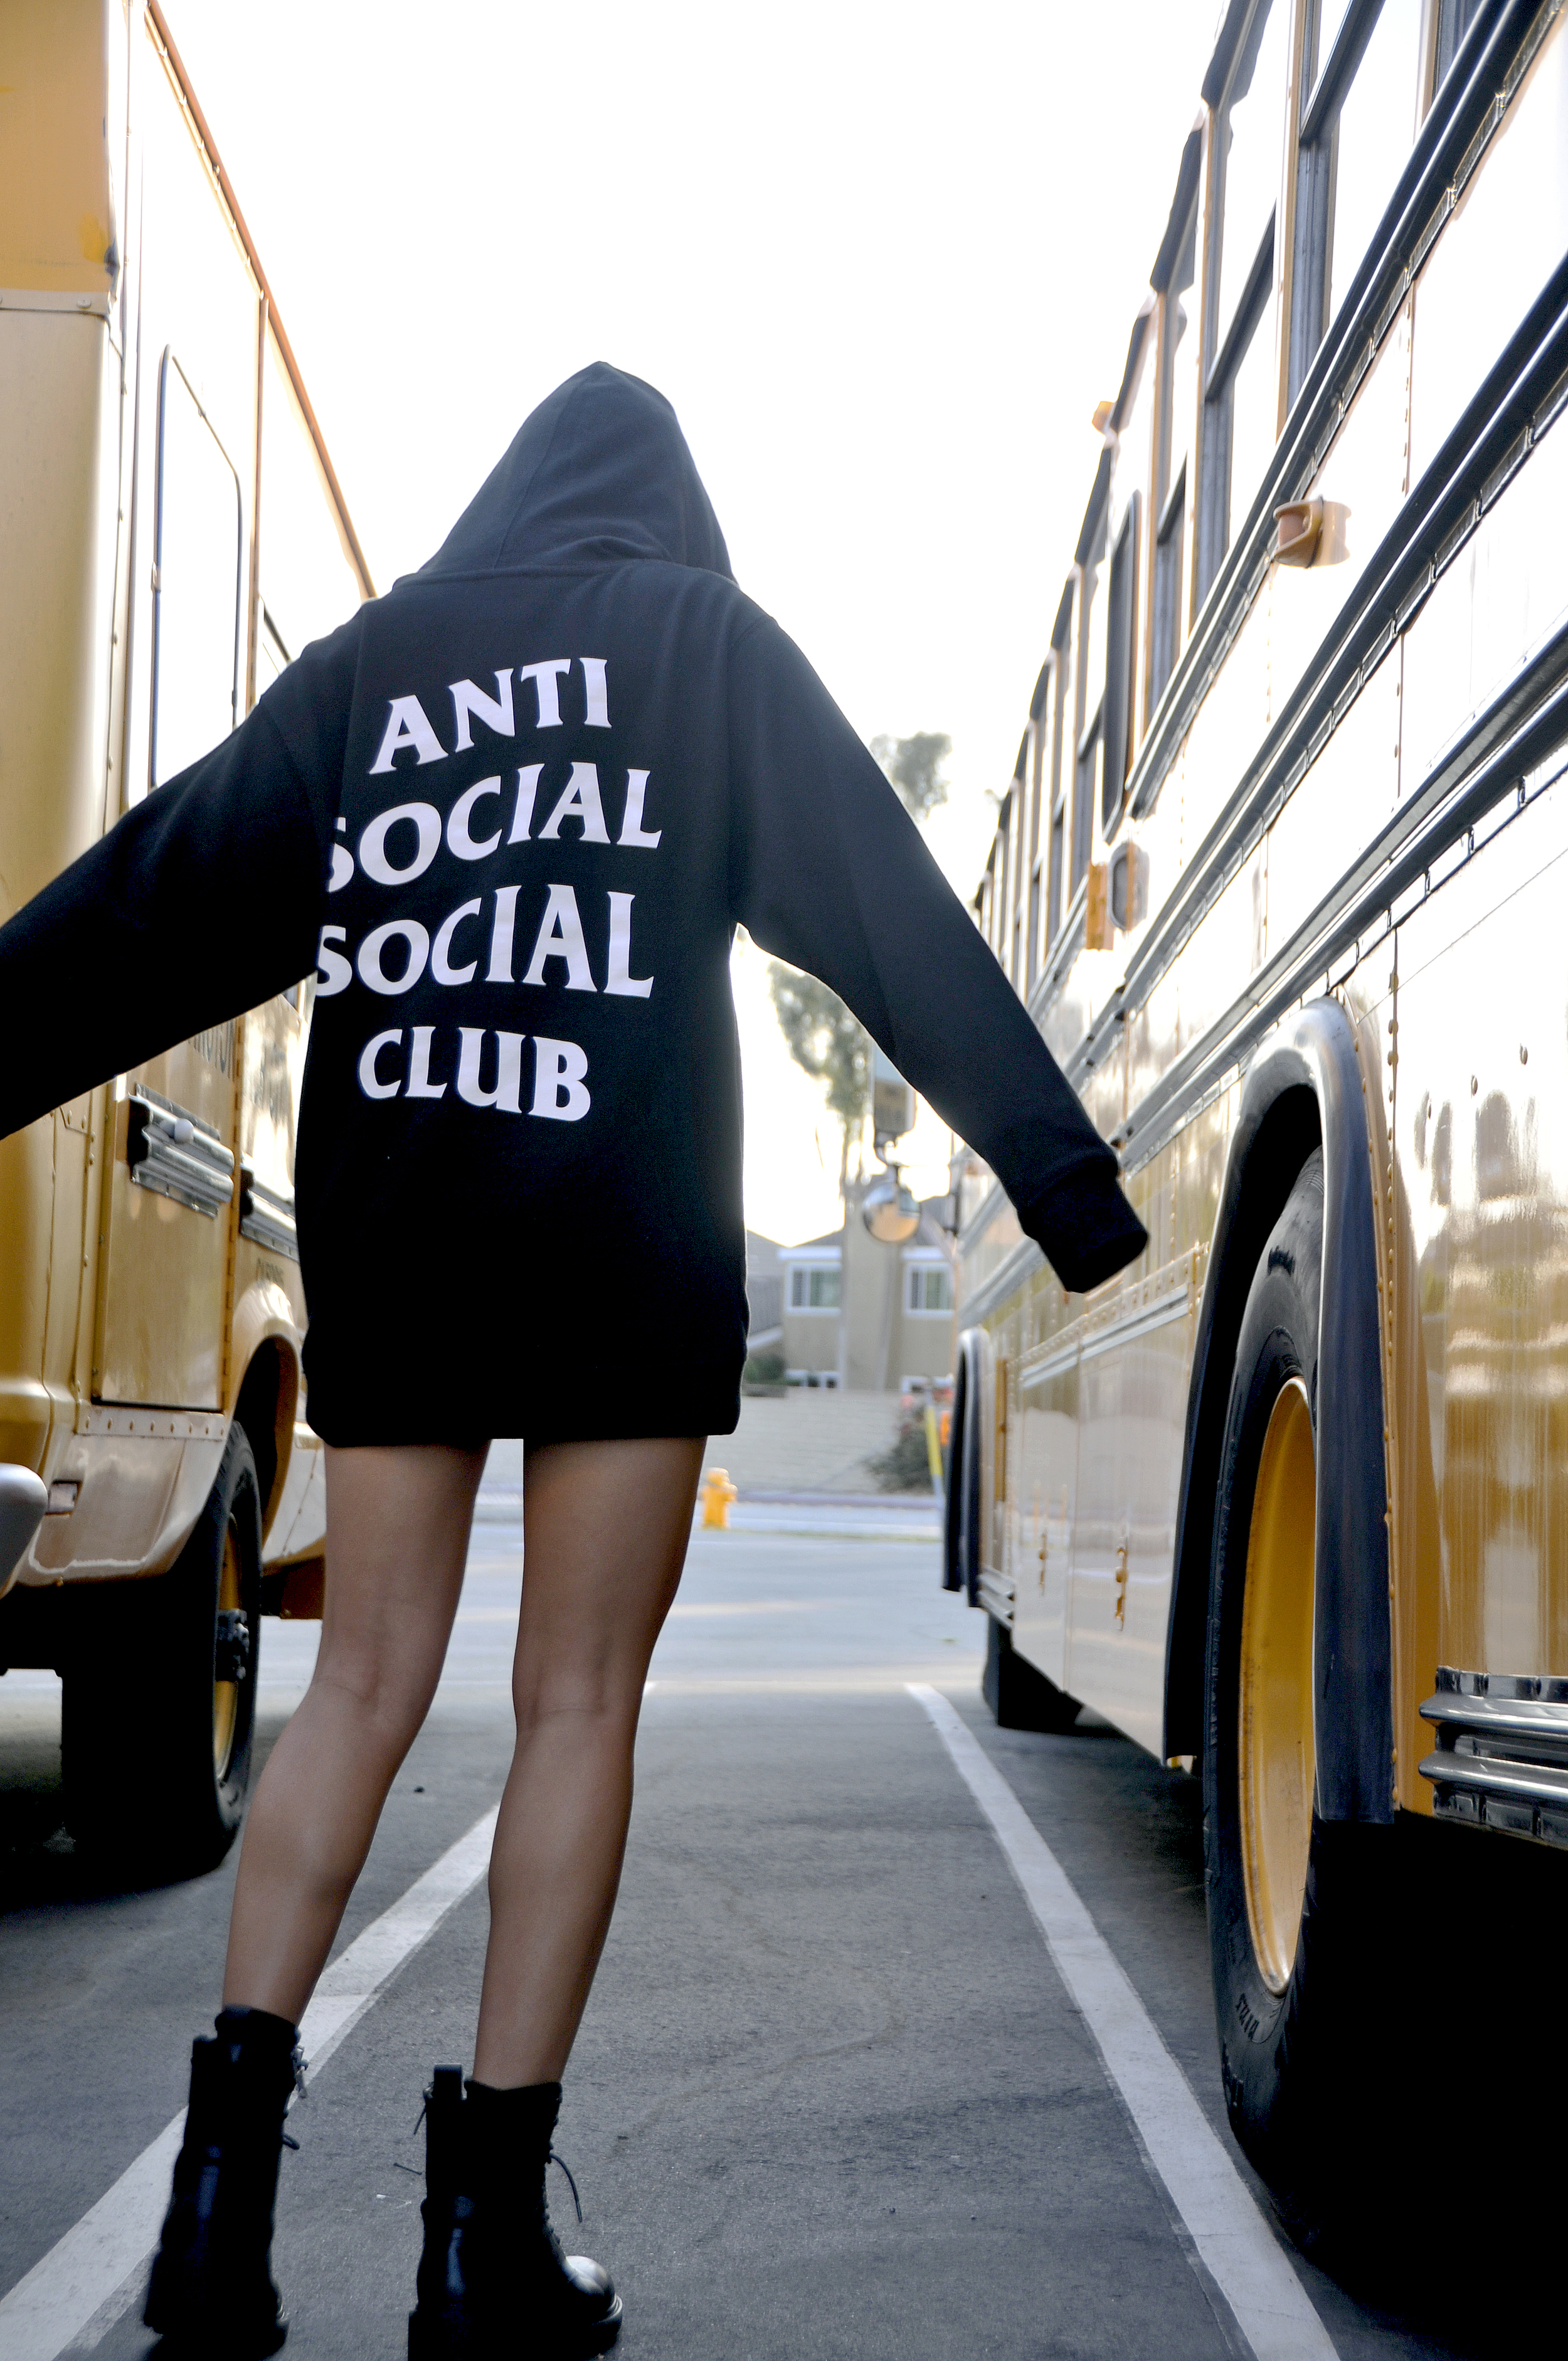 antisocial_bus_3